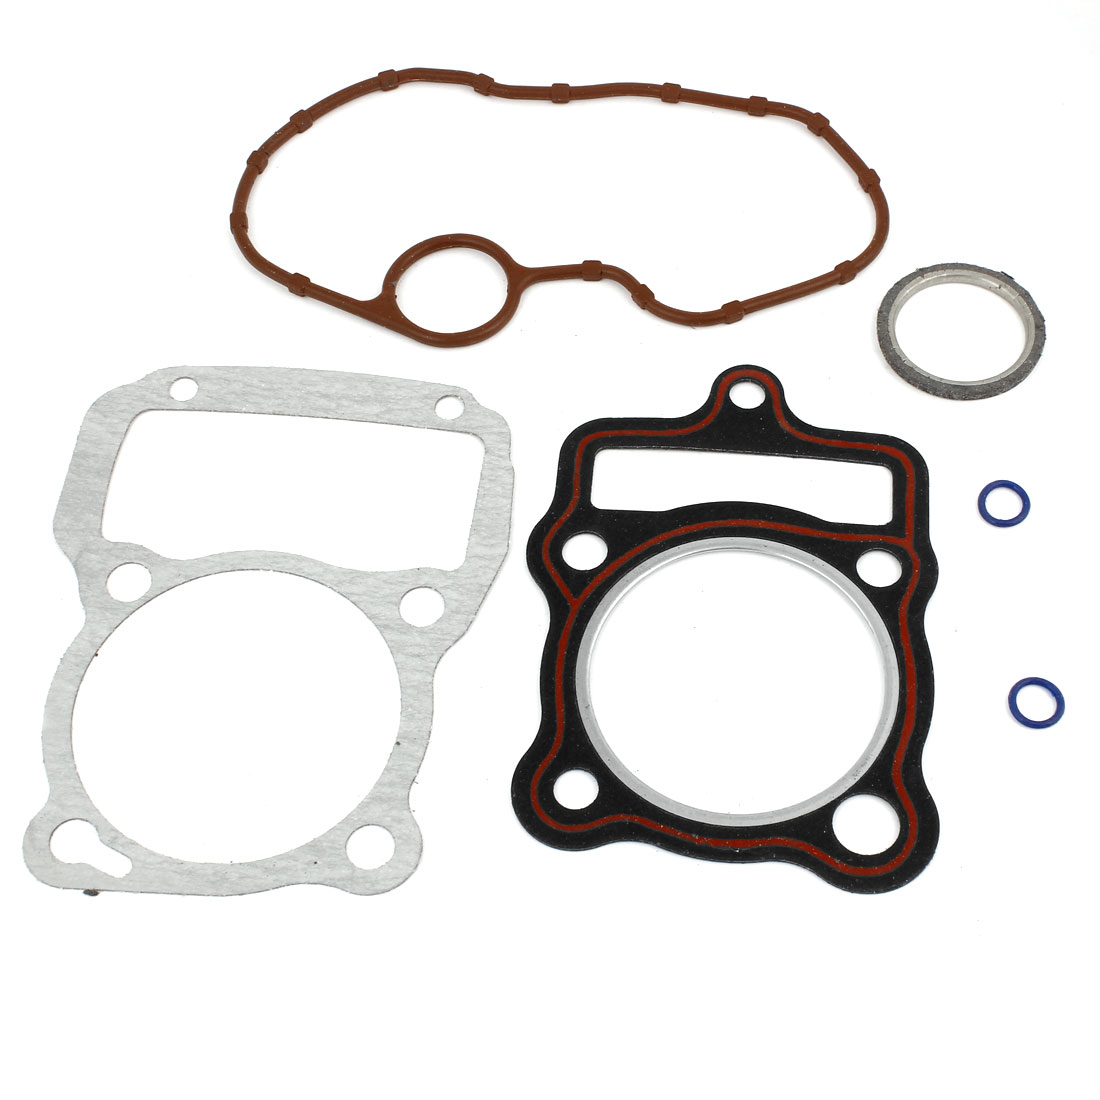 Brown Rubber Flexible Cylinder Head Gasket Kit for Motorcycle